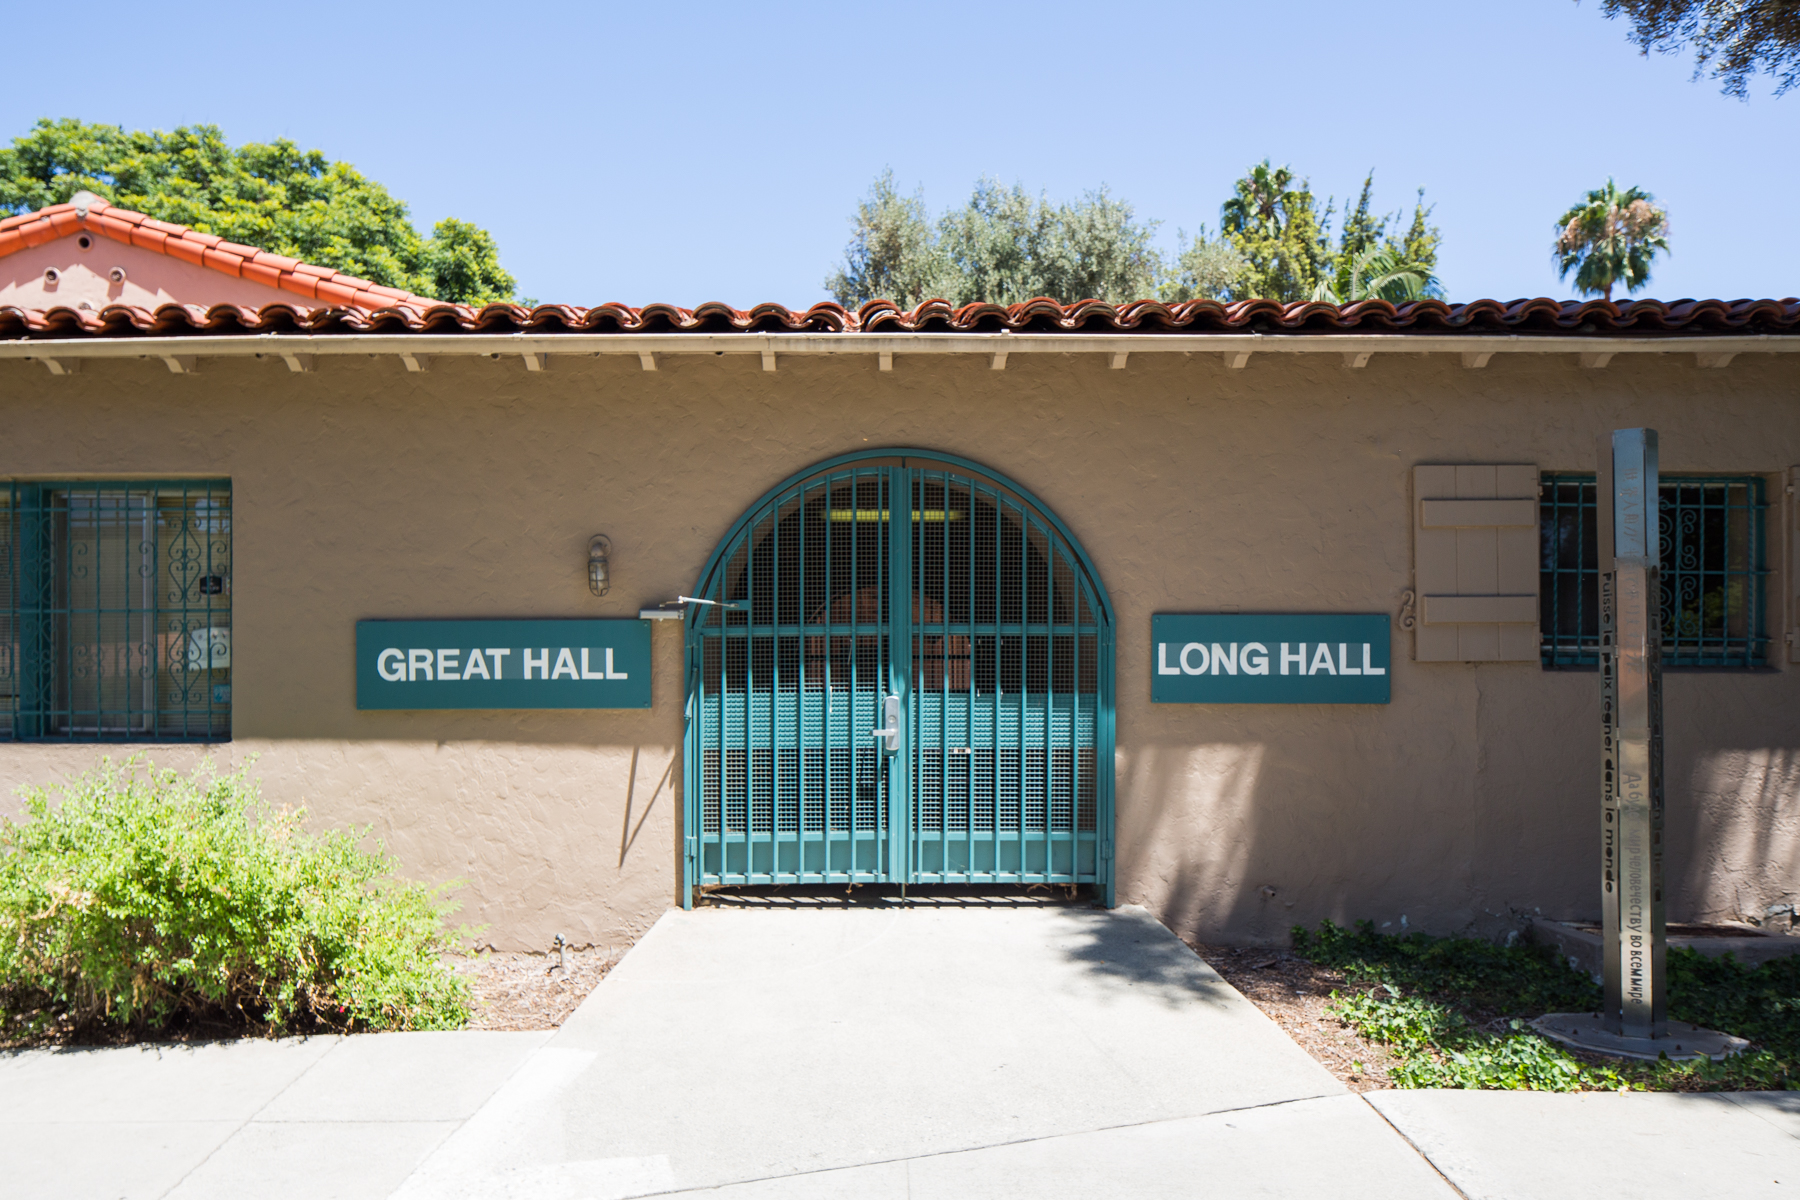 Great Hall/Long Hall